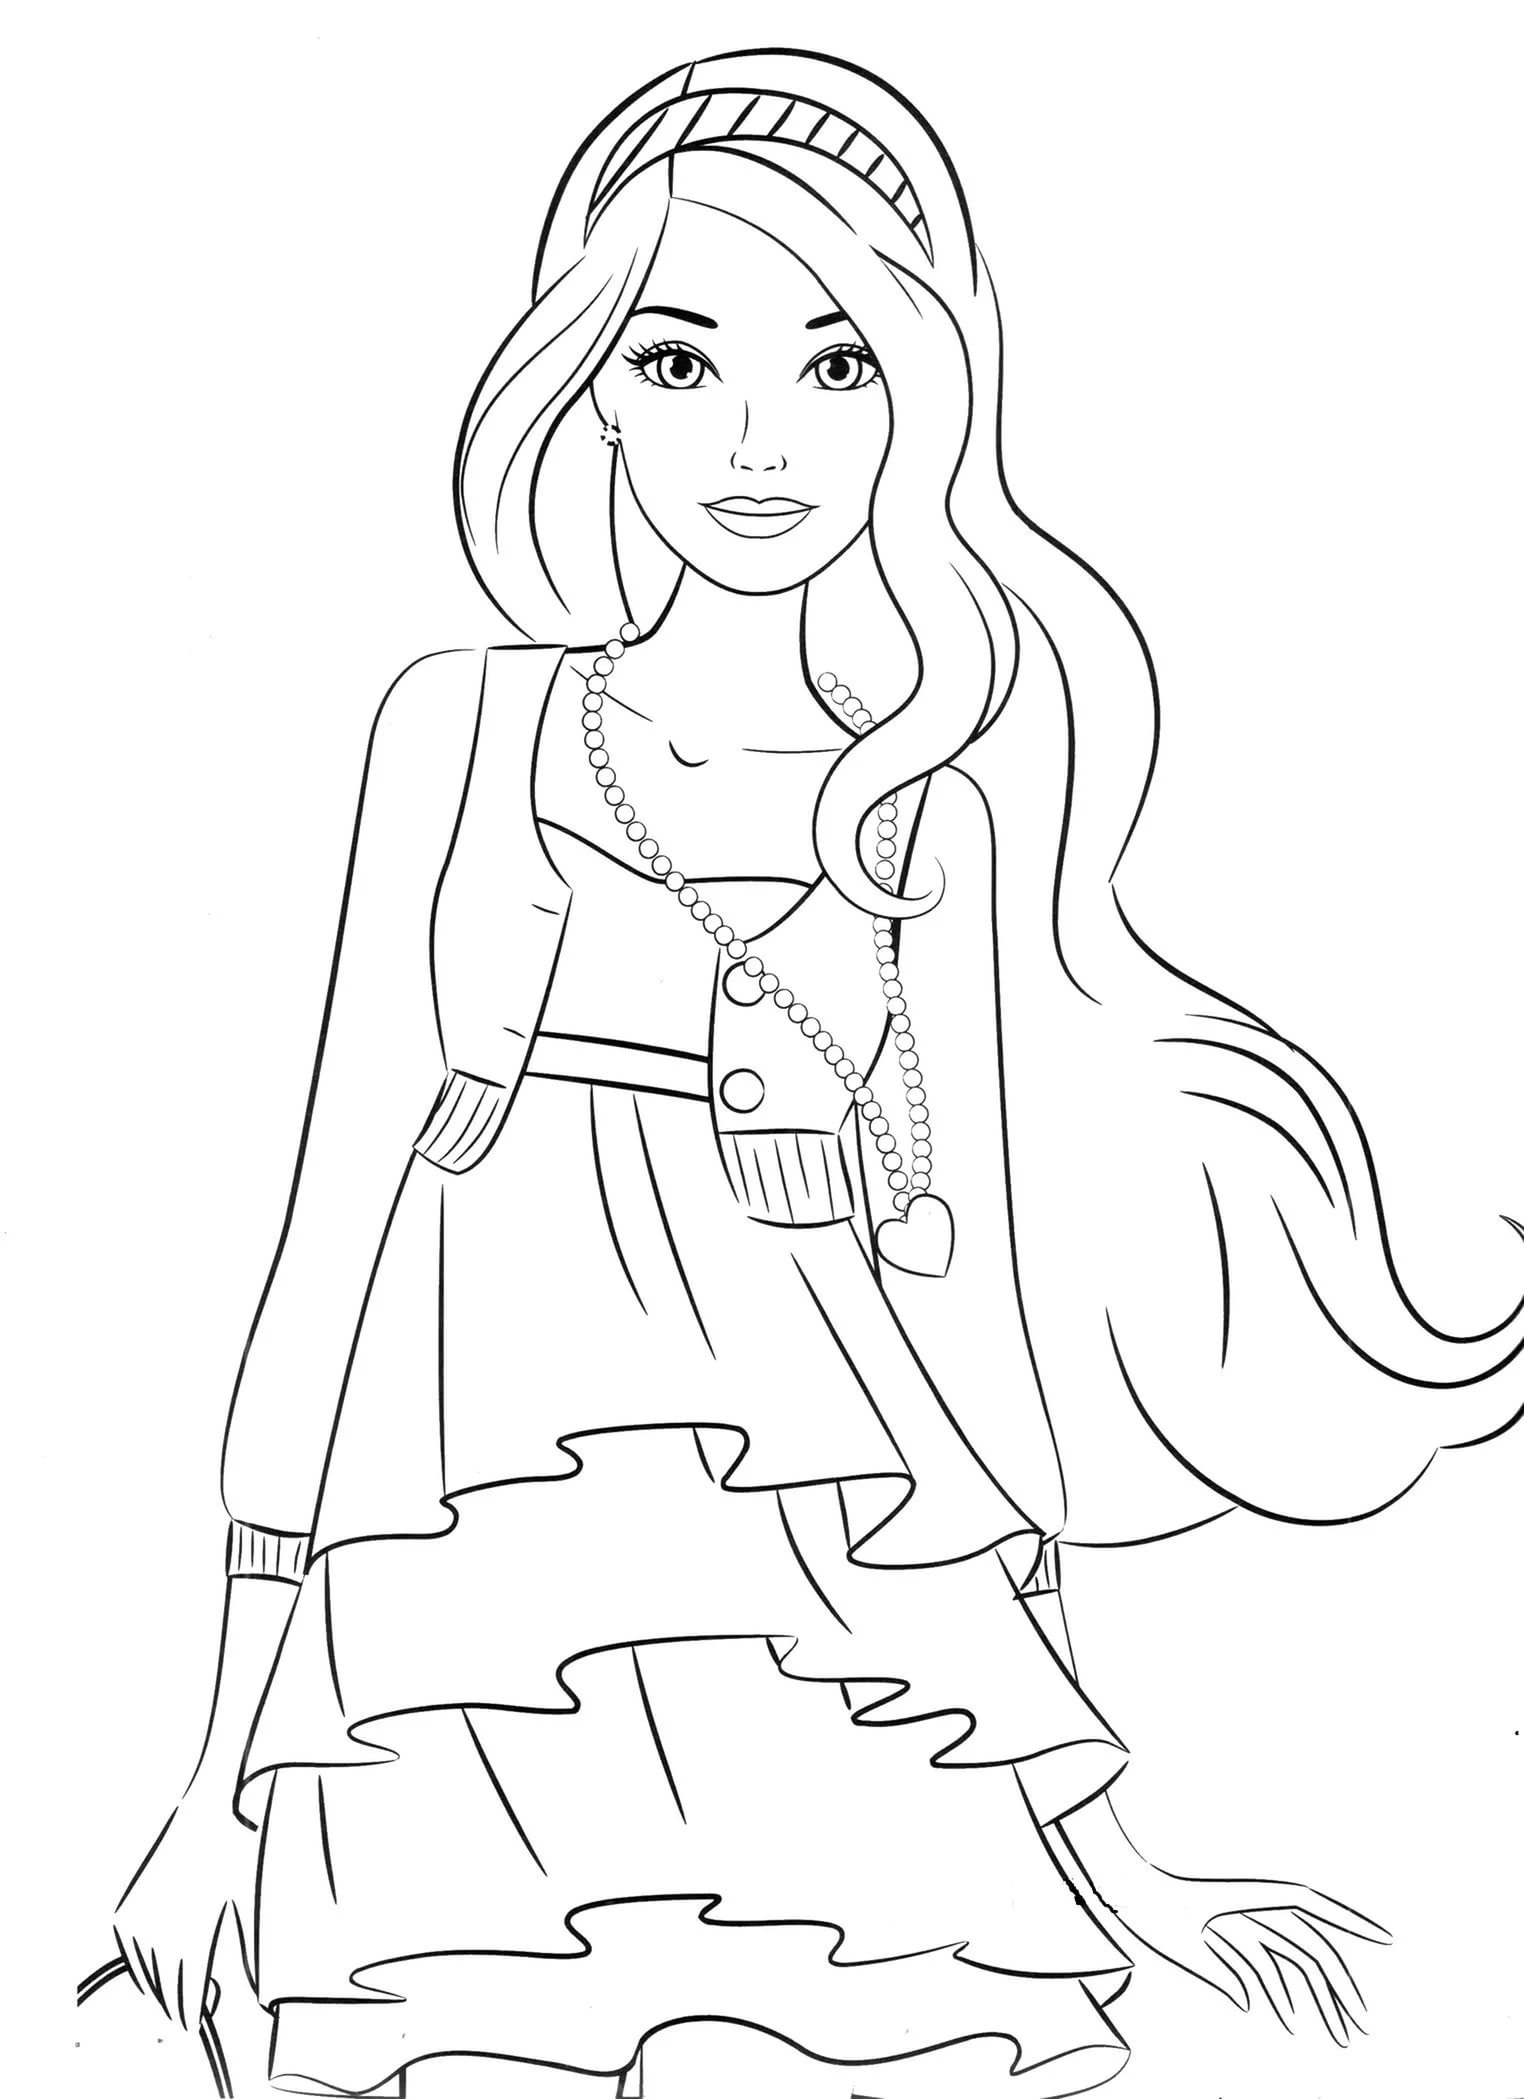 Coloring pages for 8 9 10 year old girls to download and Coloring book for 5 year olds